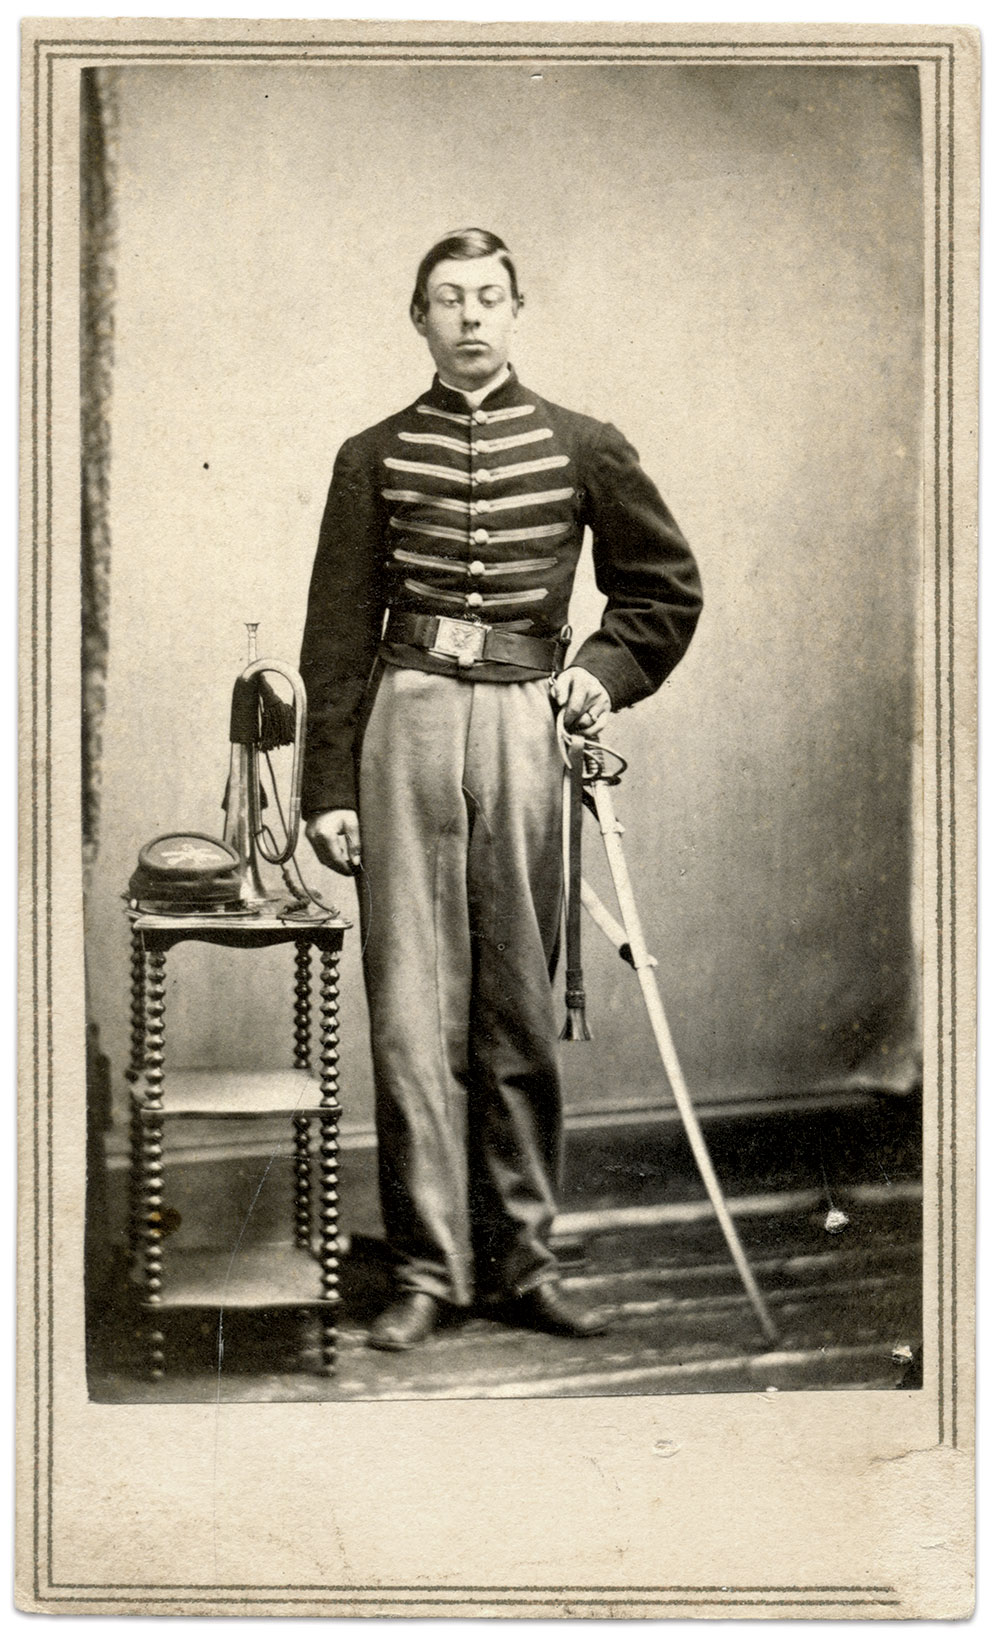 Carte de visite by Edwin A. Scholfield of Westerly, R.I. Rick Carlile Collection.